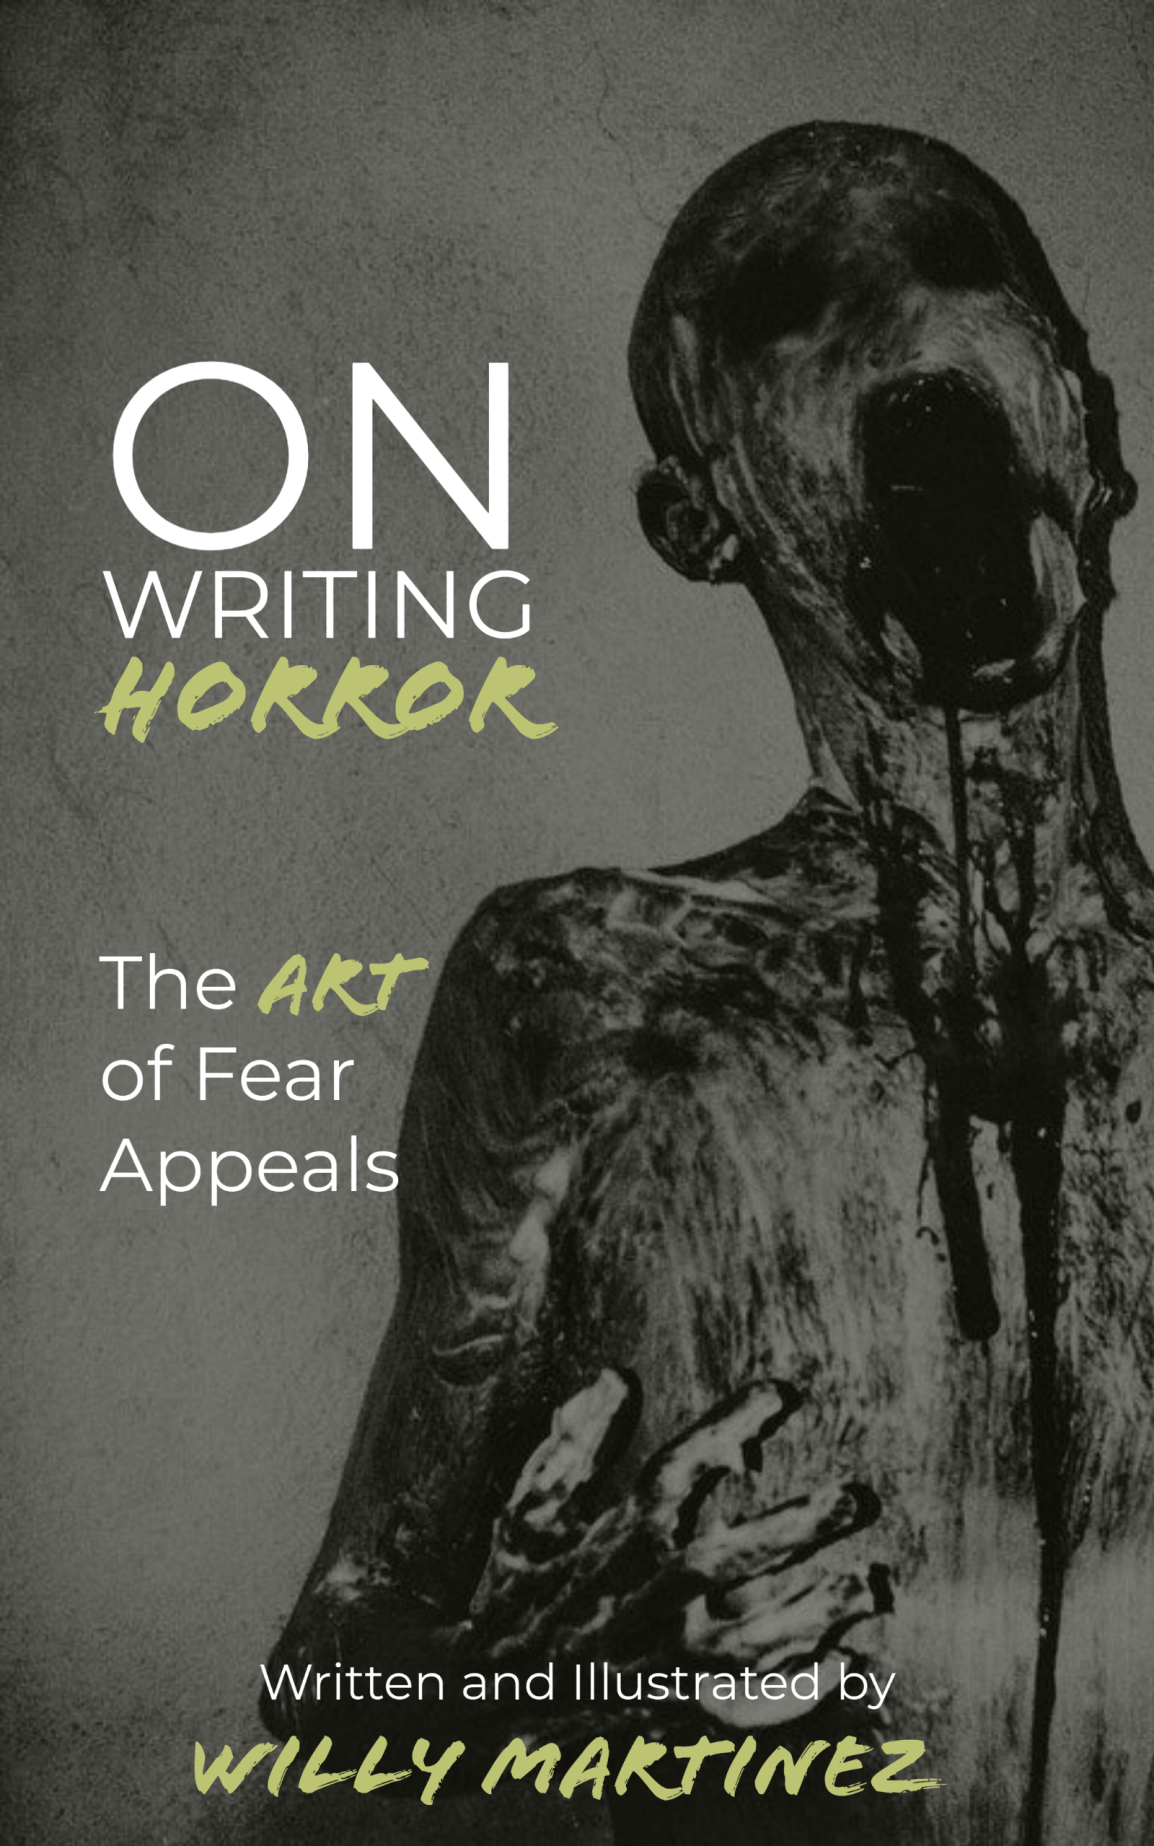 On Writing Horror at Mind on Fire Books